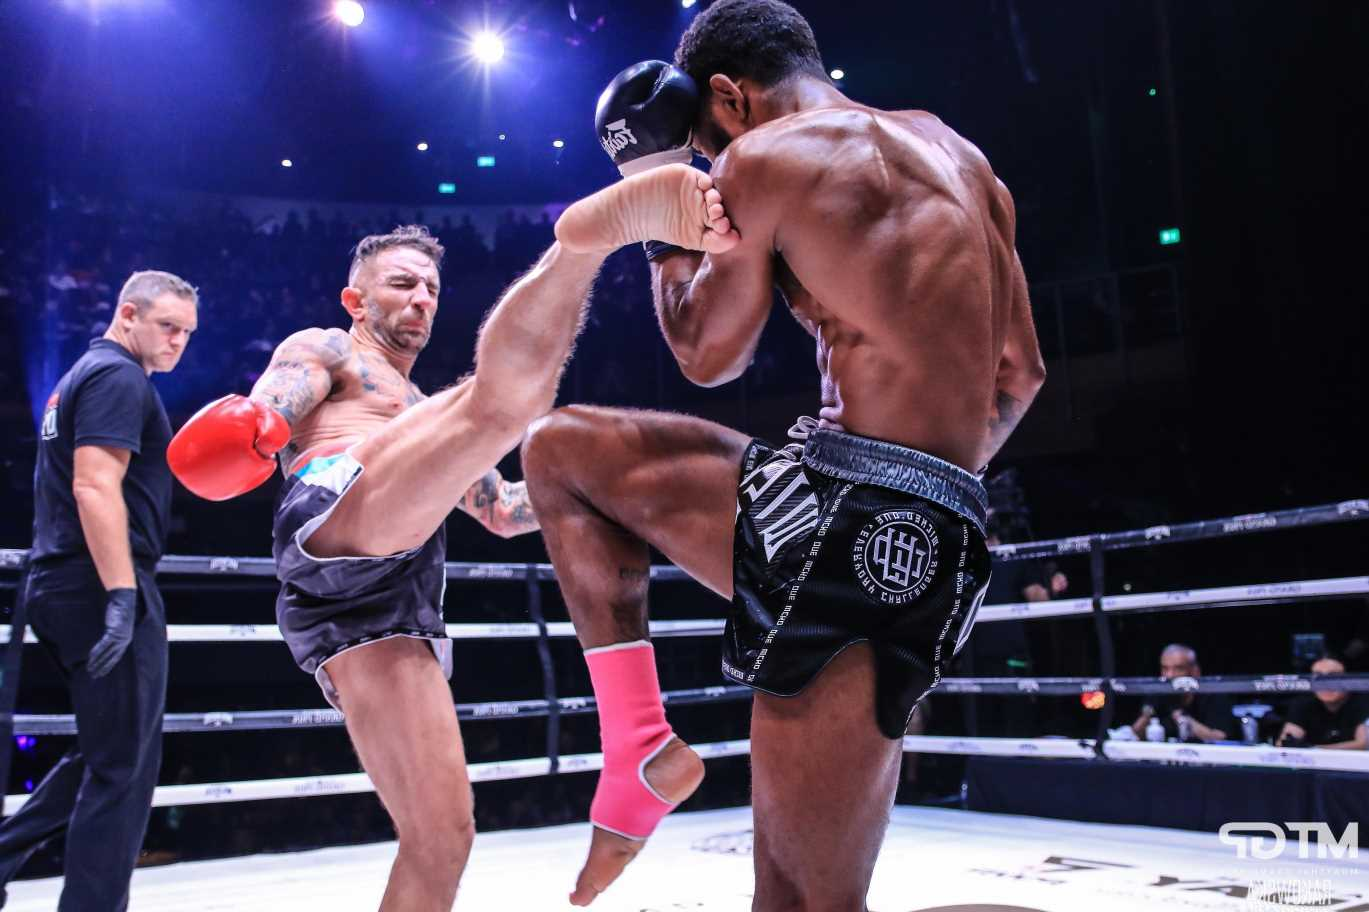 Liam Harrison 'over the moon' with successful return at Muay Thai Grand Prix after 18-month hiatus